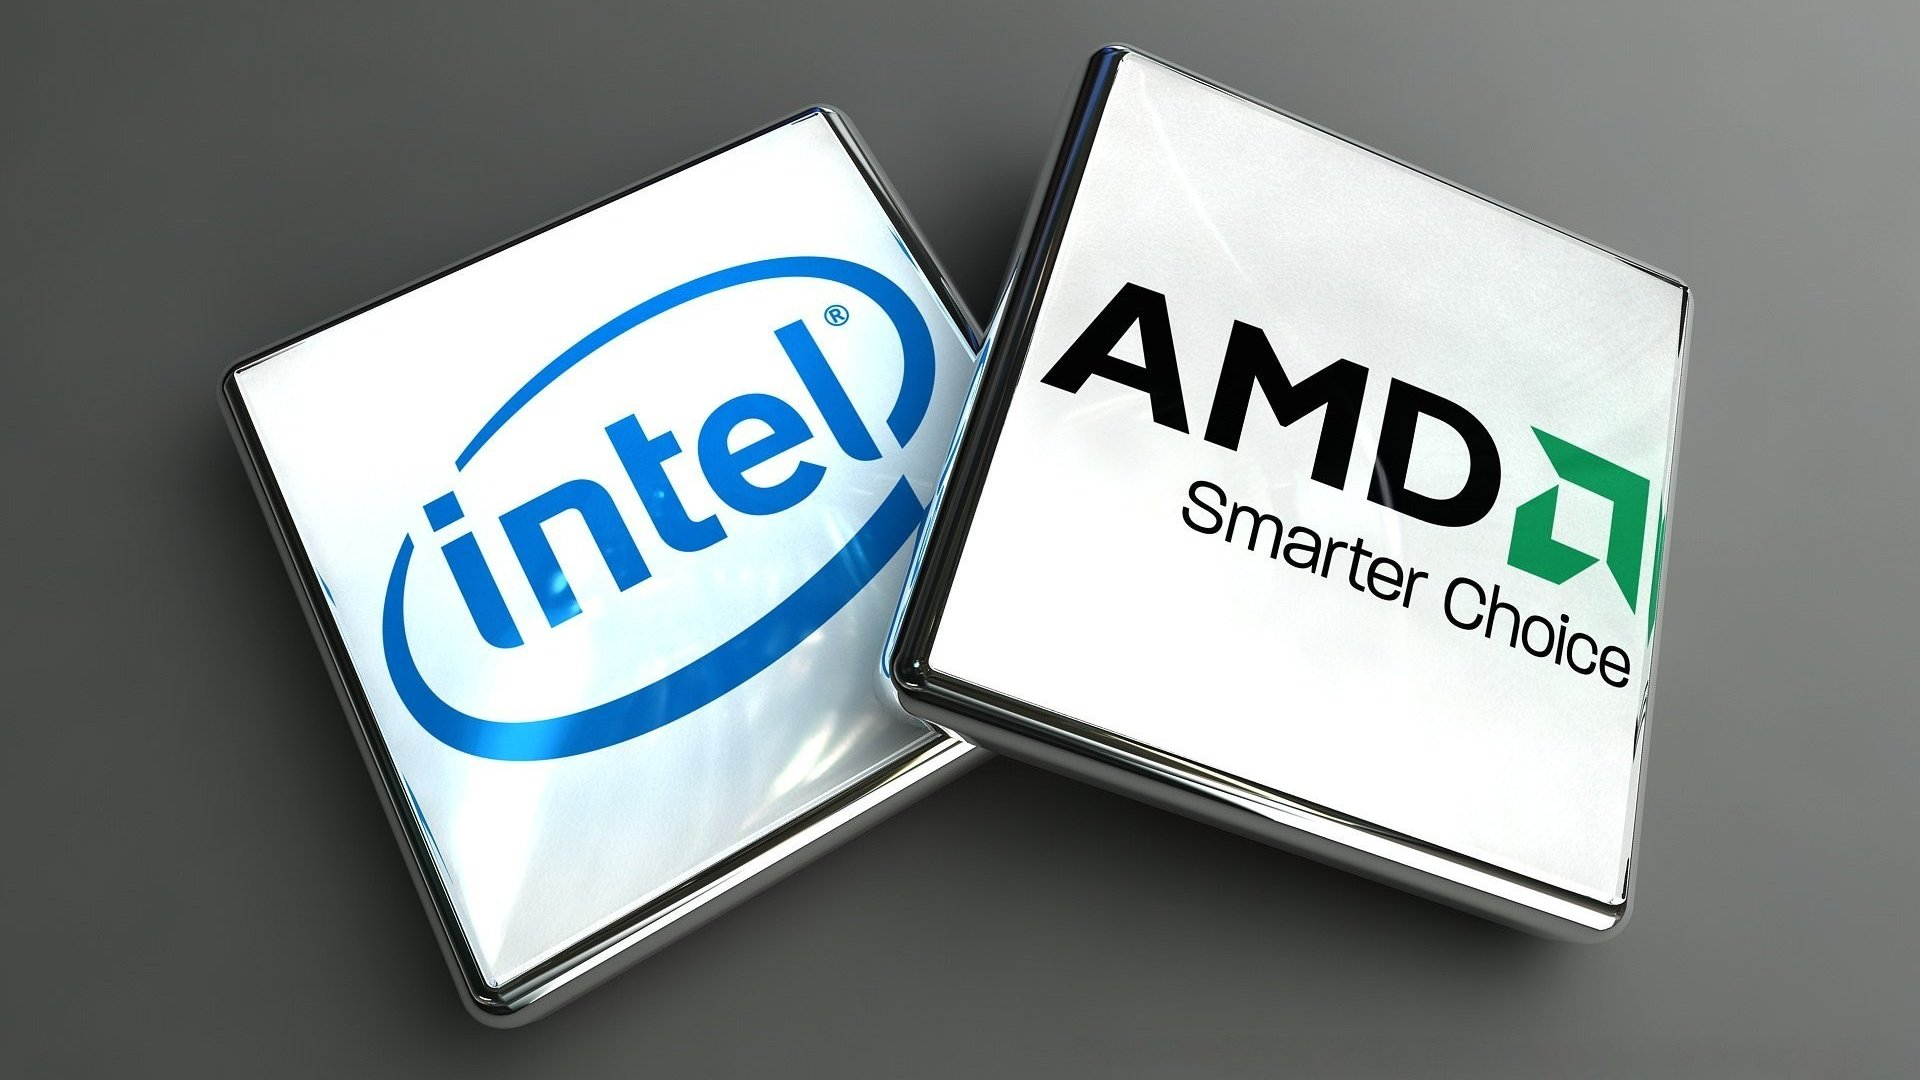 amd-intel-smarter-choice